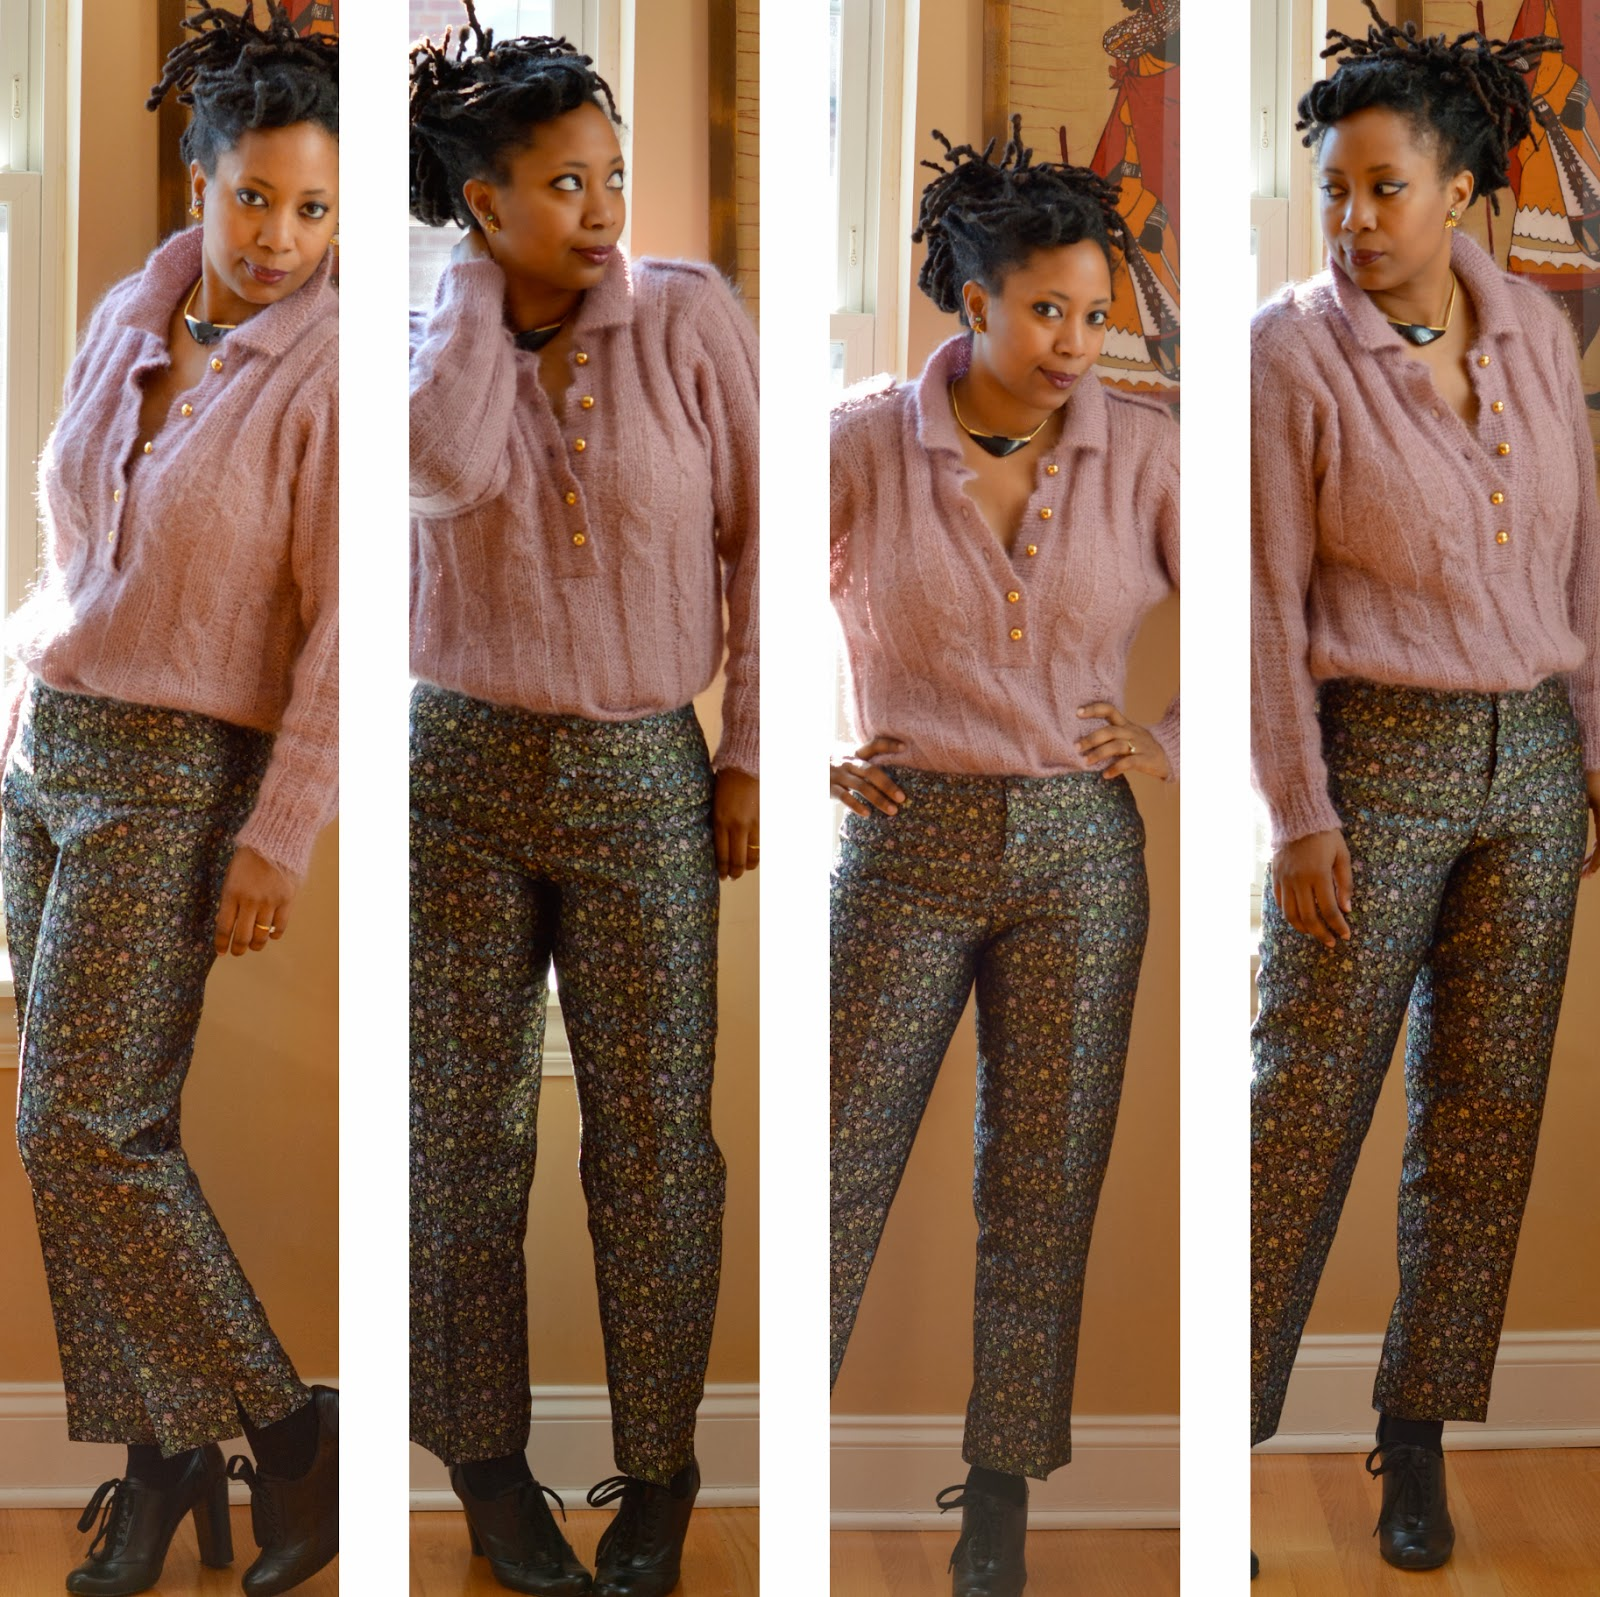 wearing brocade pants